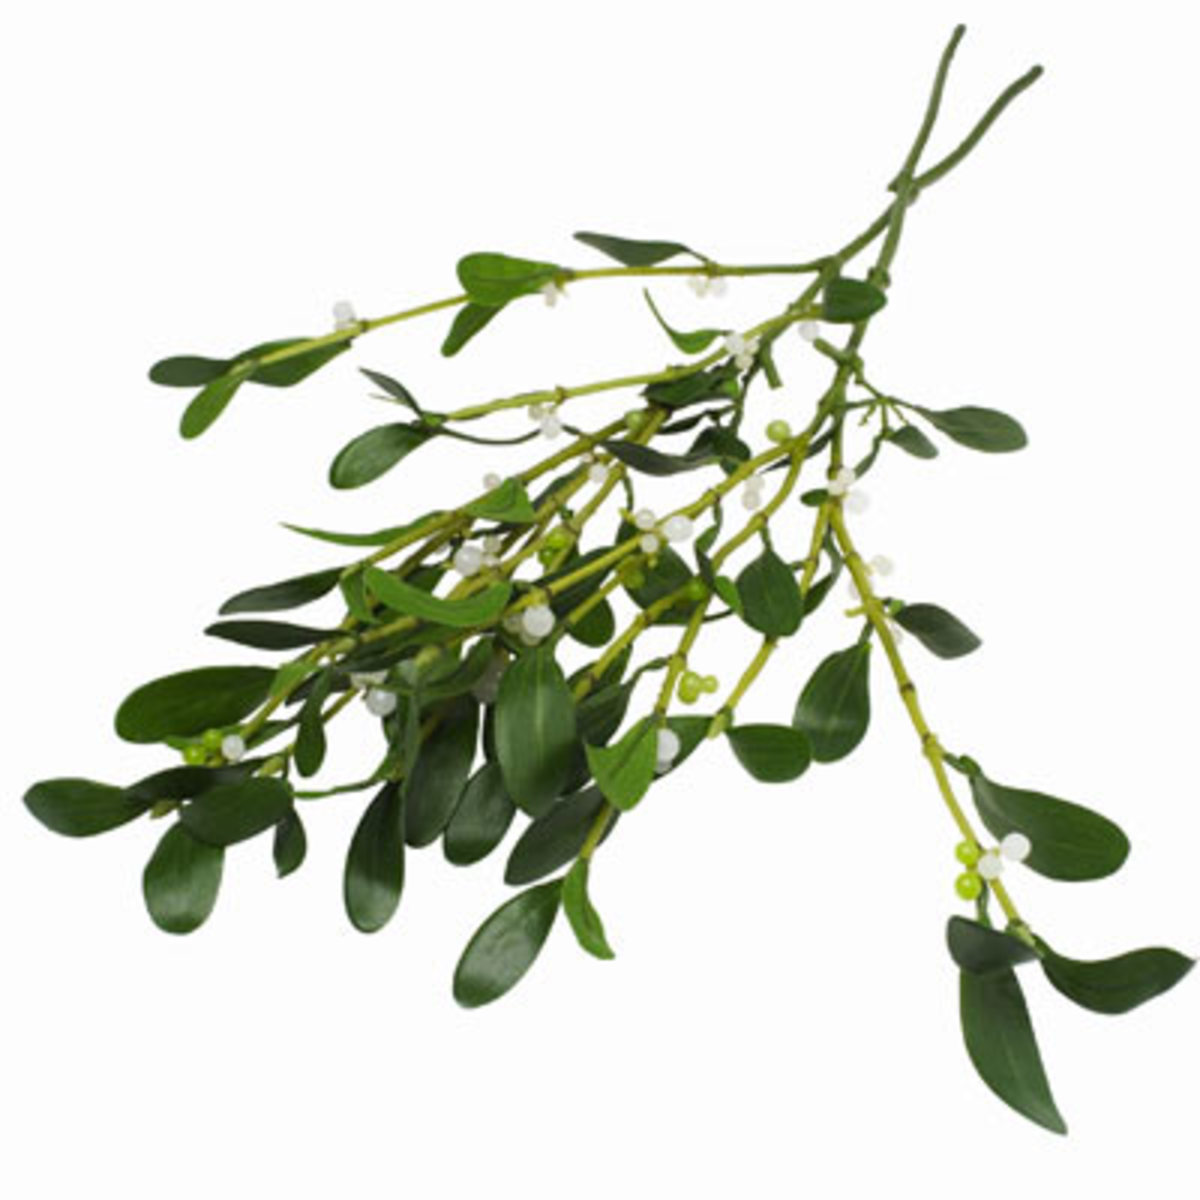 Mistletoe - Odin's younger son Baldur could only be harmed by arrows made of mistletoe twigs. Loki tricked Blind Hodr into loosing off a mistletoe arrow at Baldbur